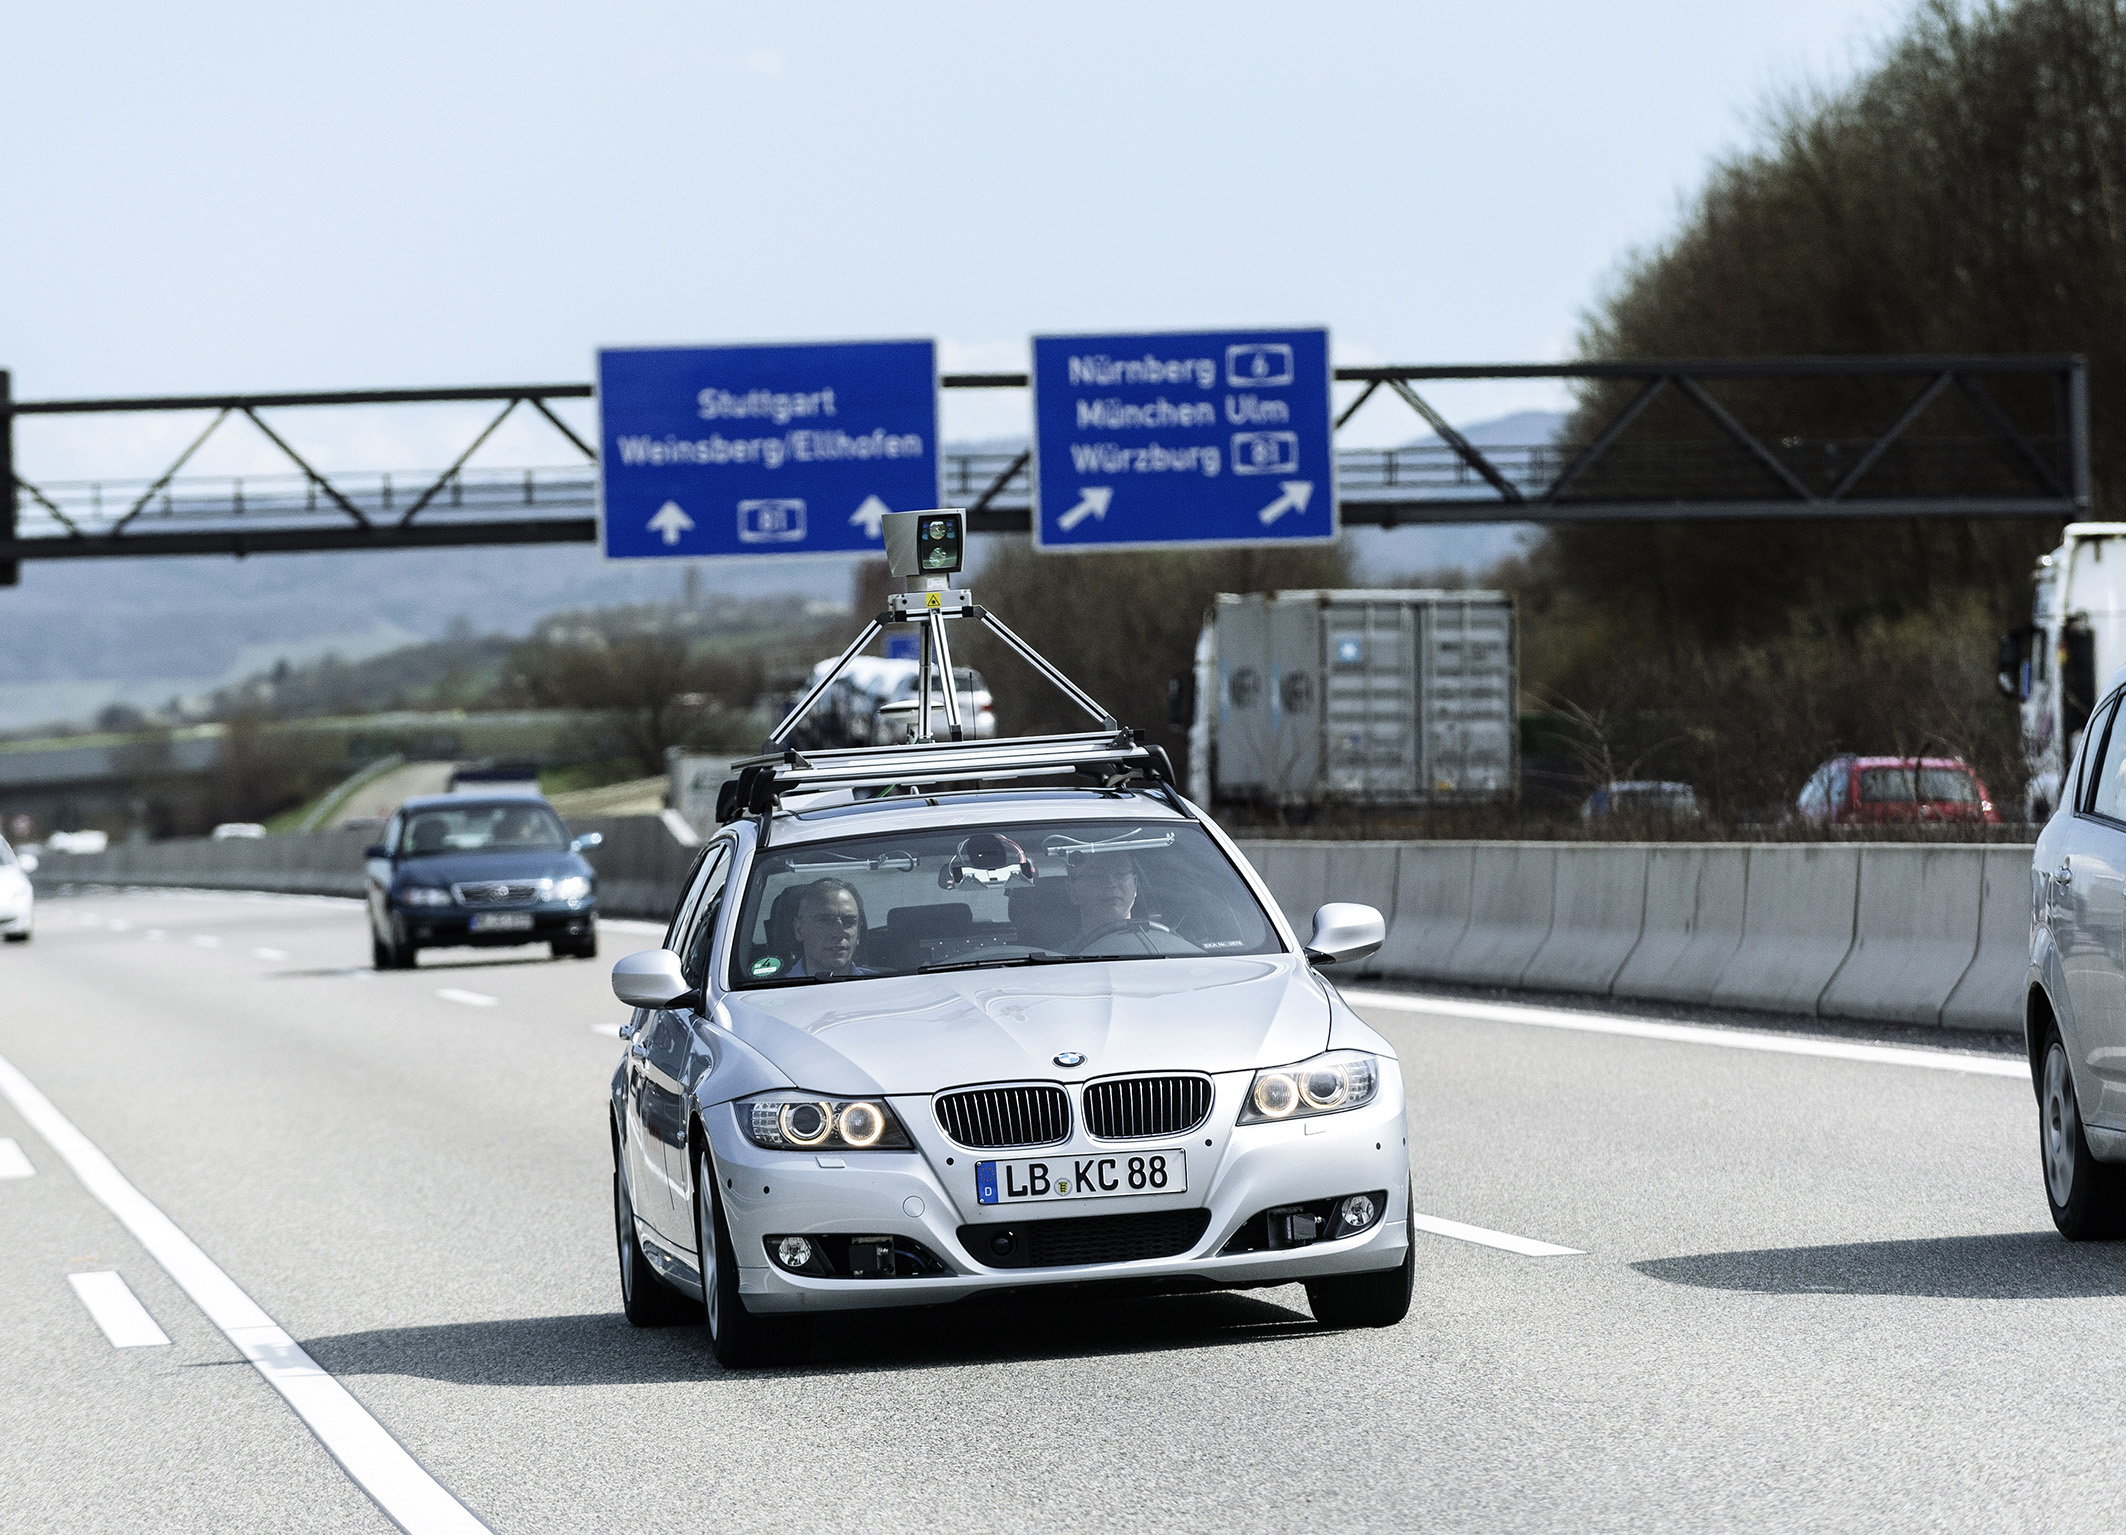 Used Cars In Albuquerque >> Bosch Unveils Autonomous Driving System For Traffic Jams